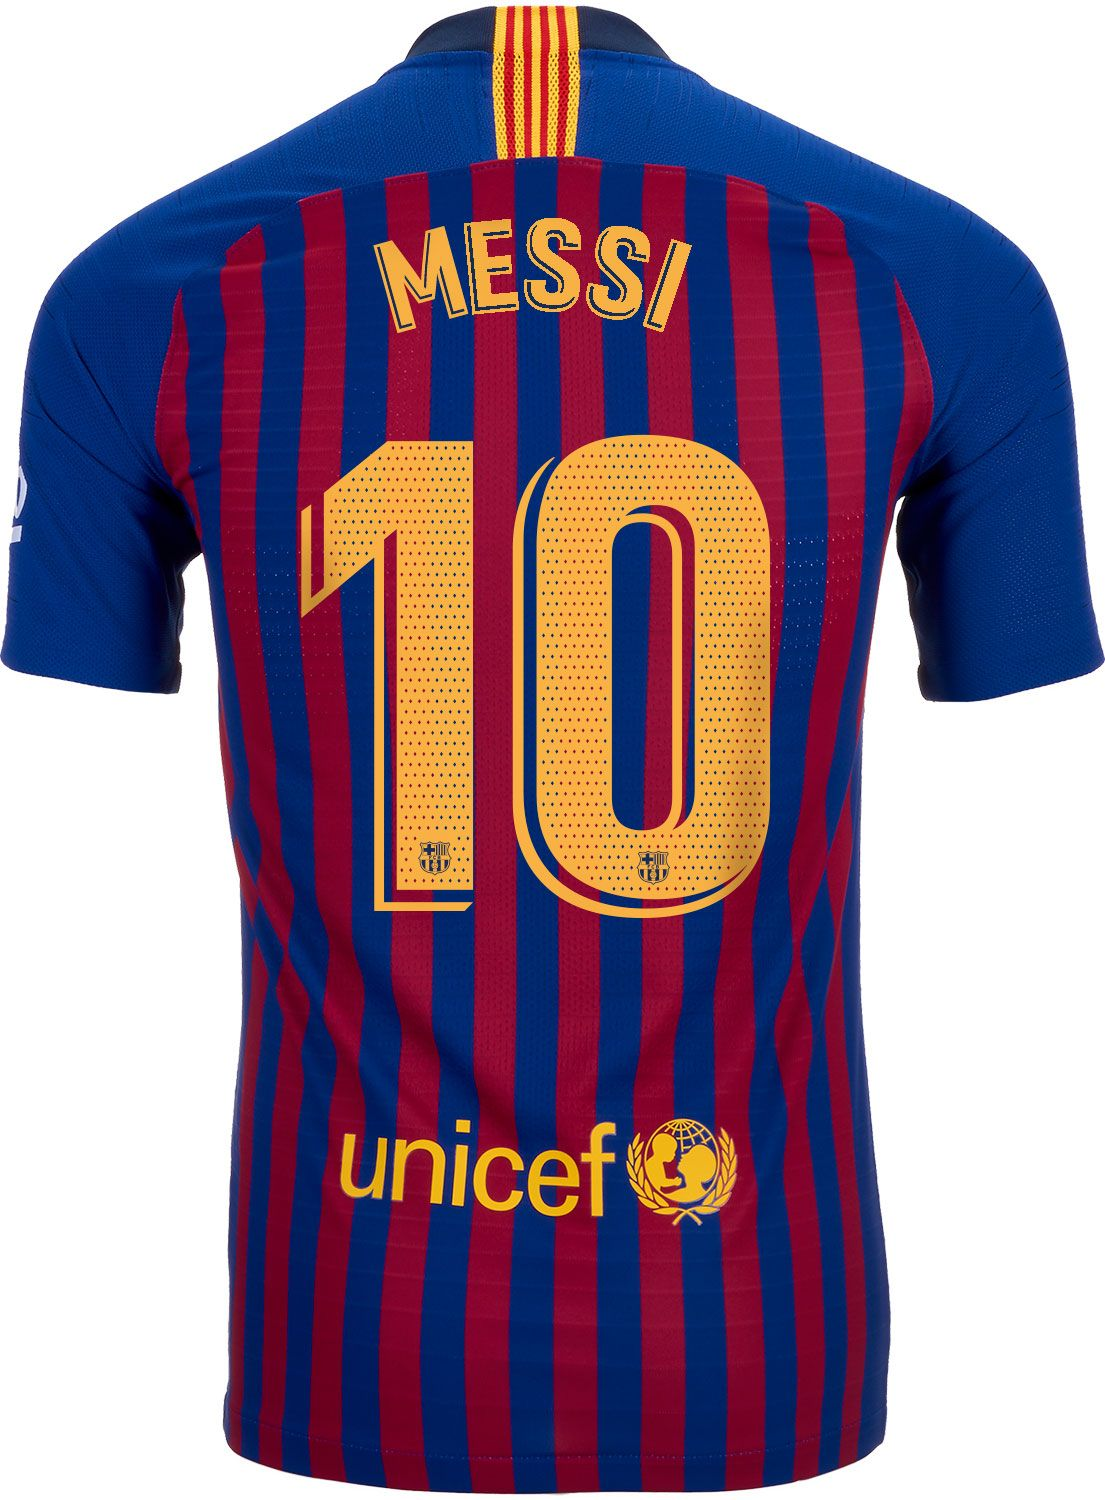 3e3af3f972d 2018/19 Nike FC Barcelona Leo Messi Home Match Jersey. Buy it from  SoccerPro.